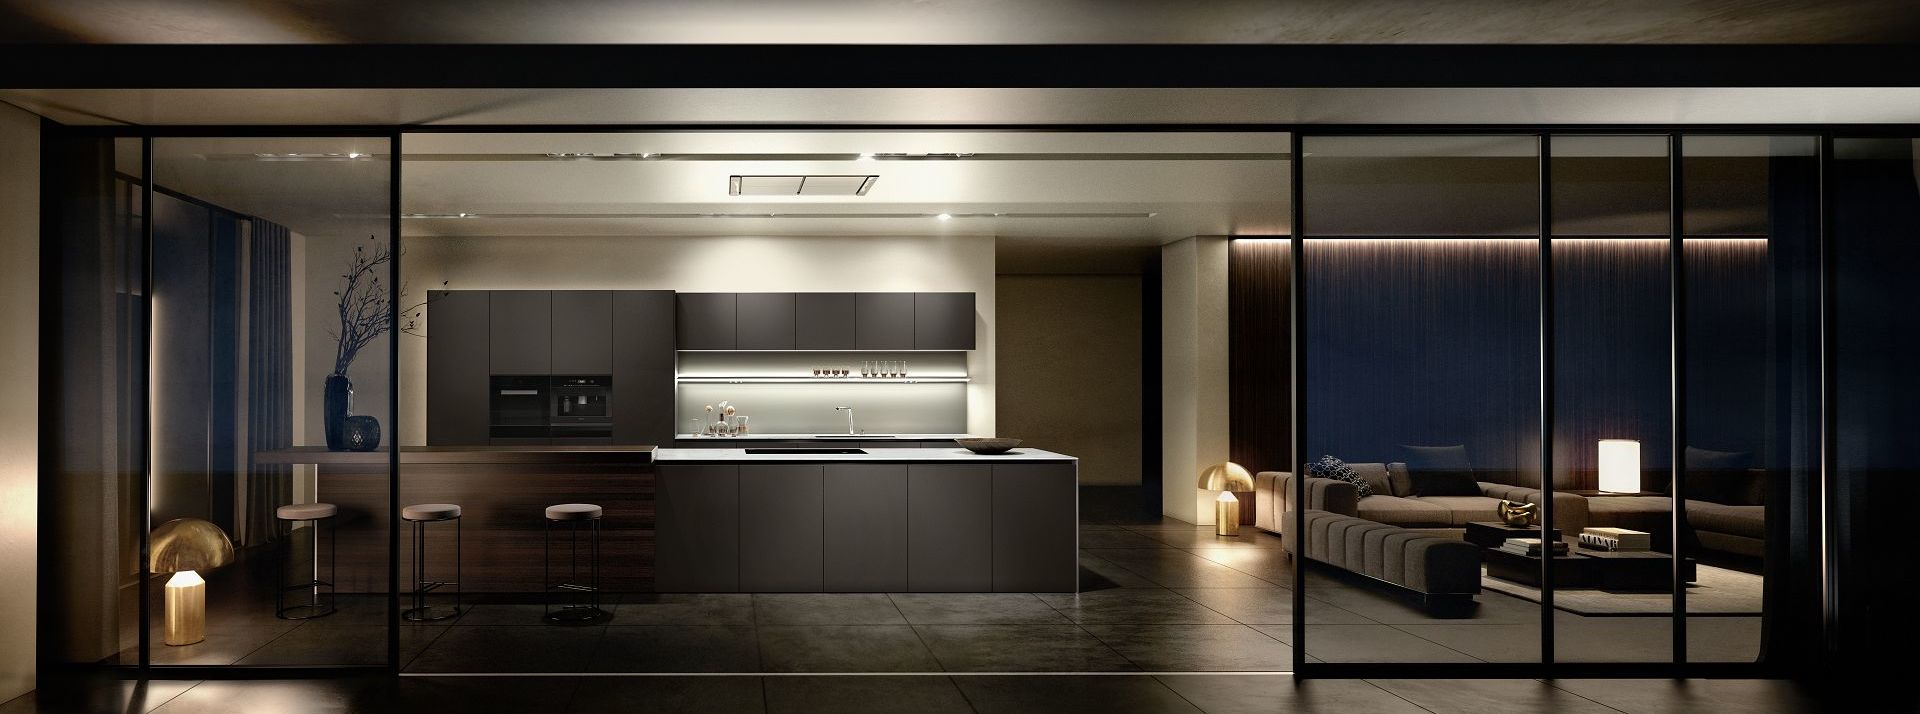 Kitchen Design Kitchen Design By Siematic Timeless Elegance Made In Germany